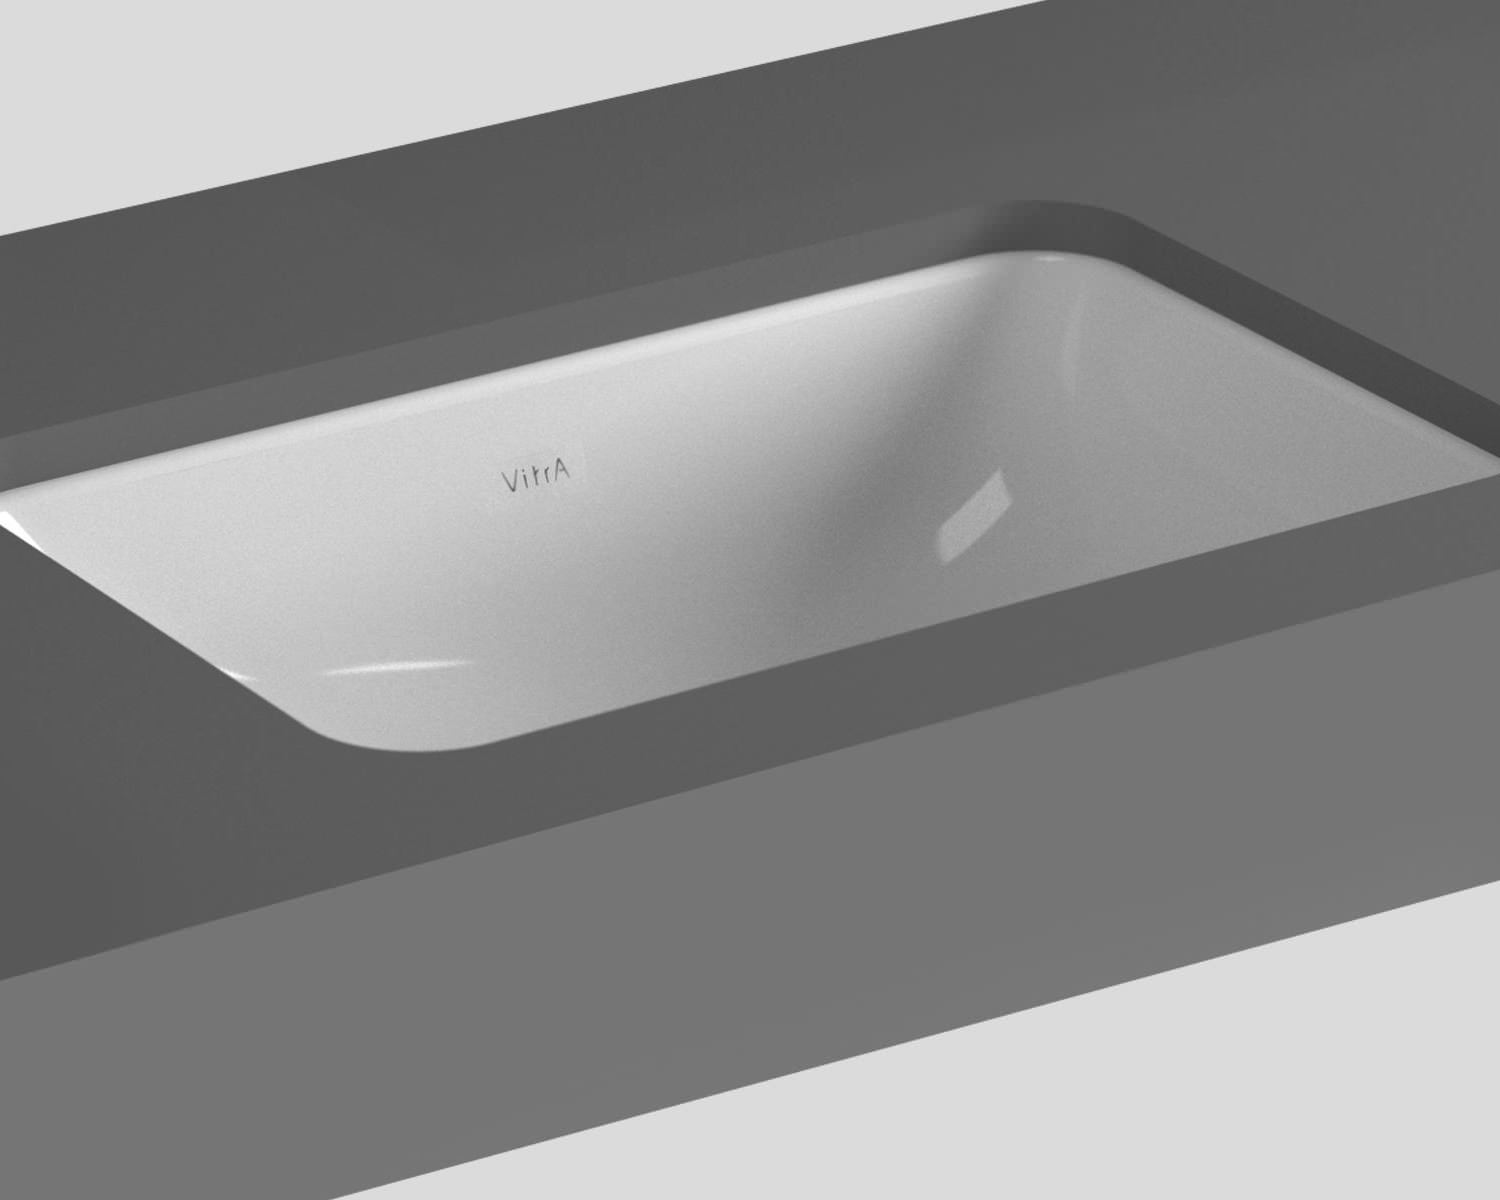 Wide Illuminated Bathroom Mirror With Backlit Effect For Double Or Wide Basins: VitrA S20 Commercial Under Counter Square Basin